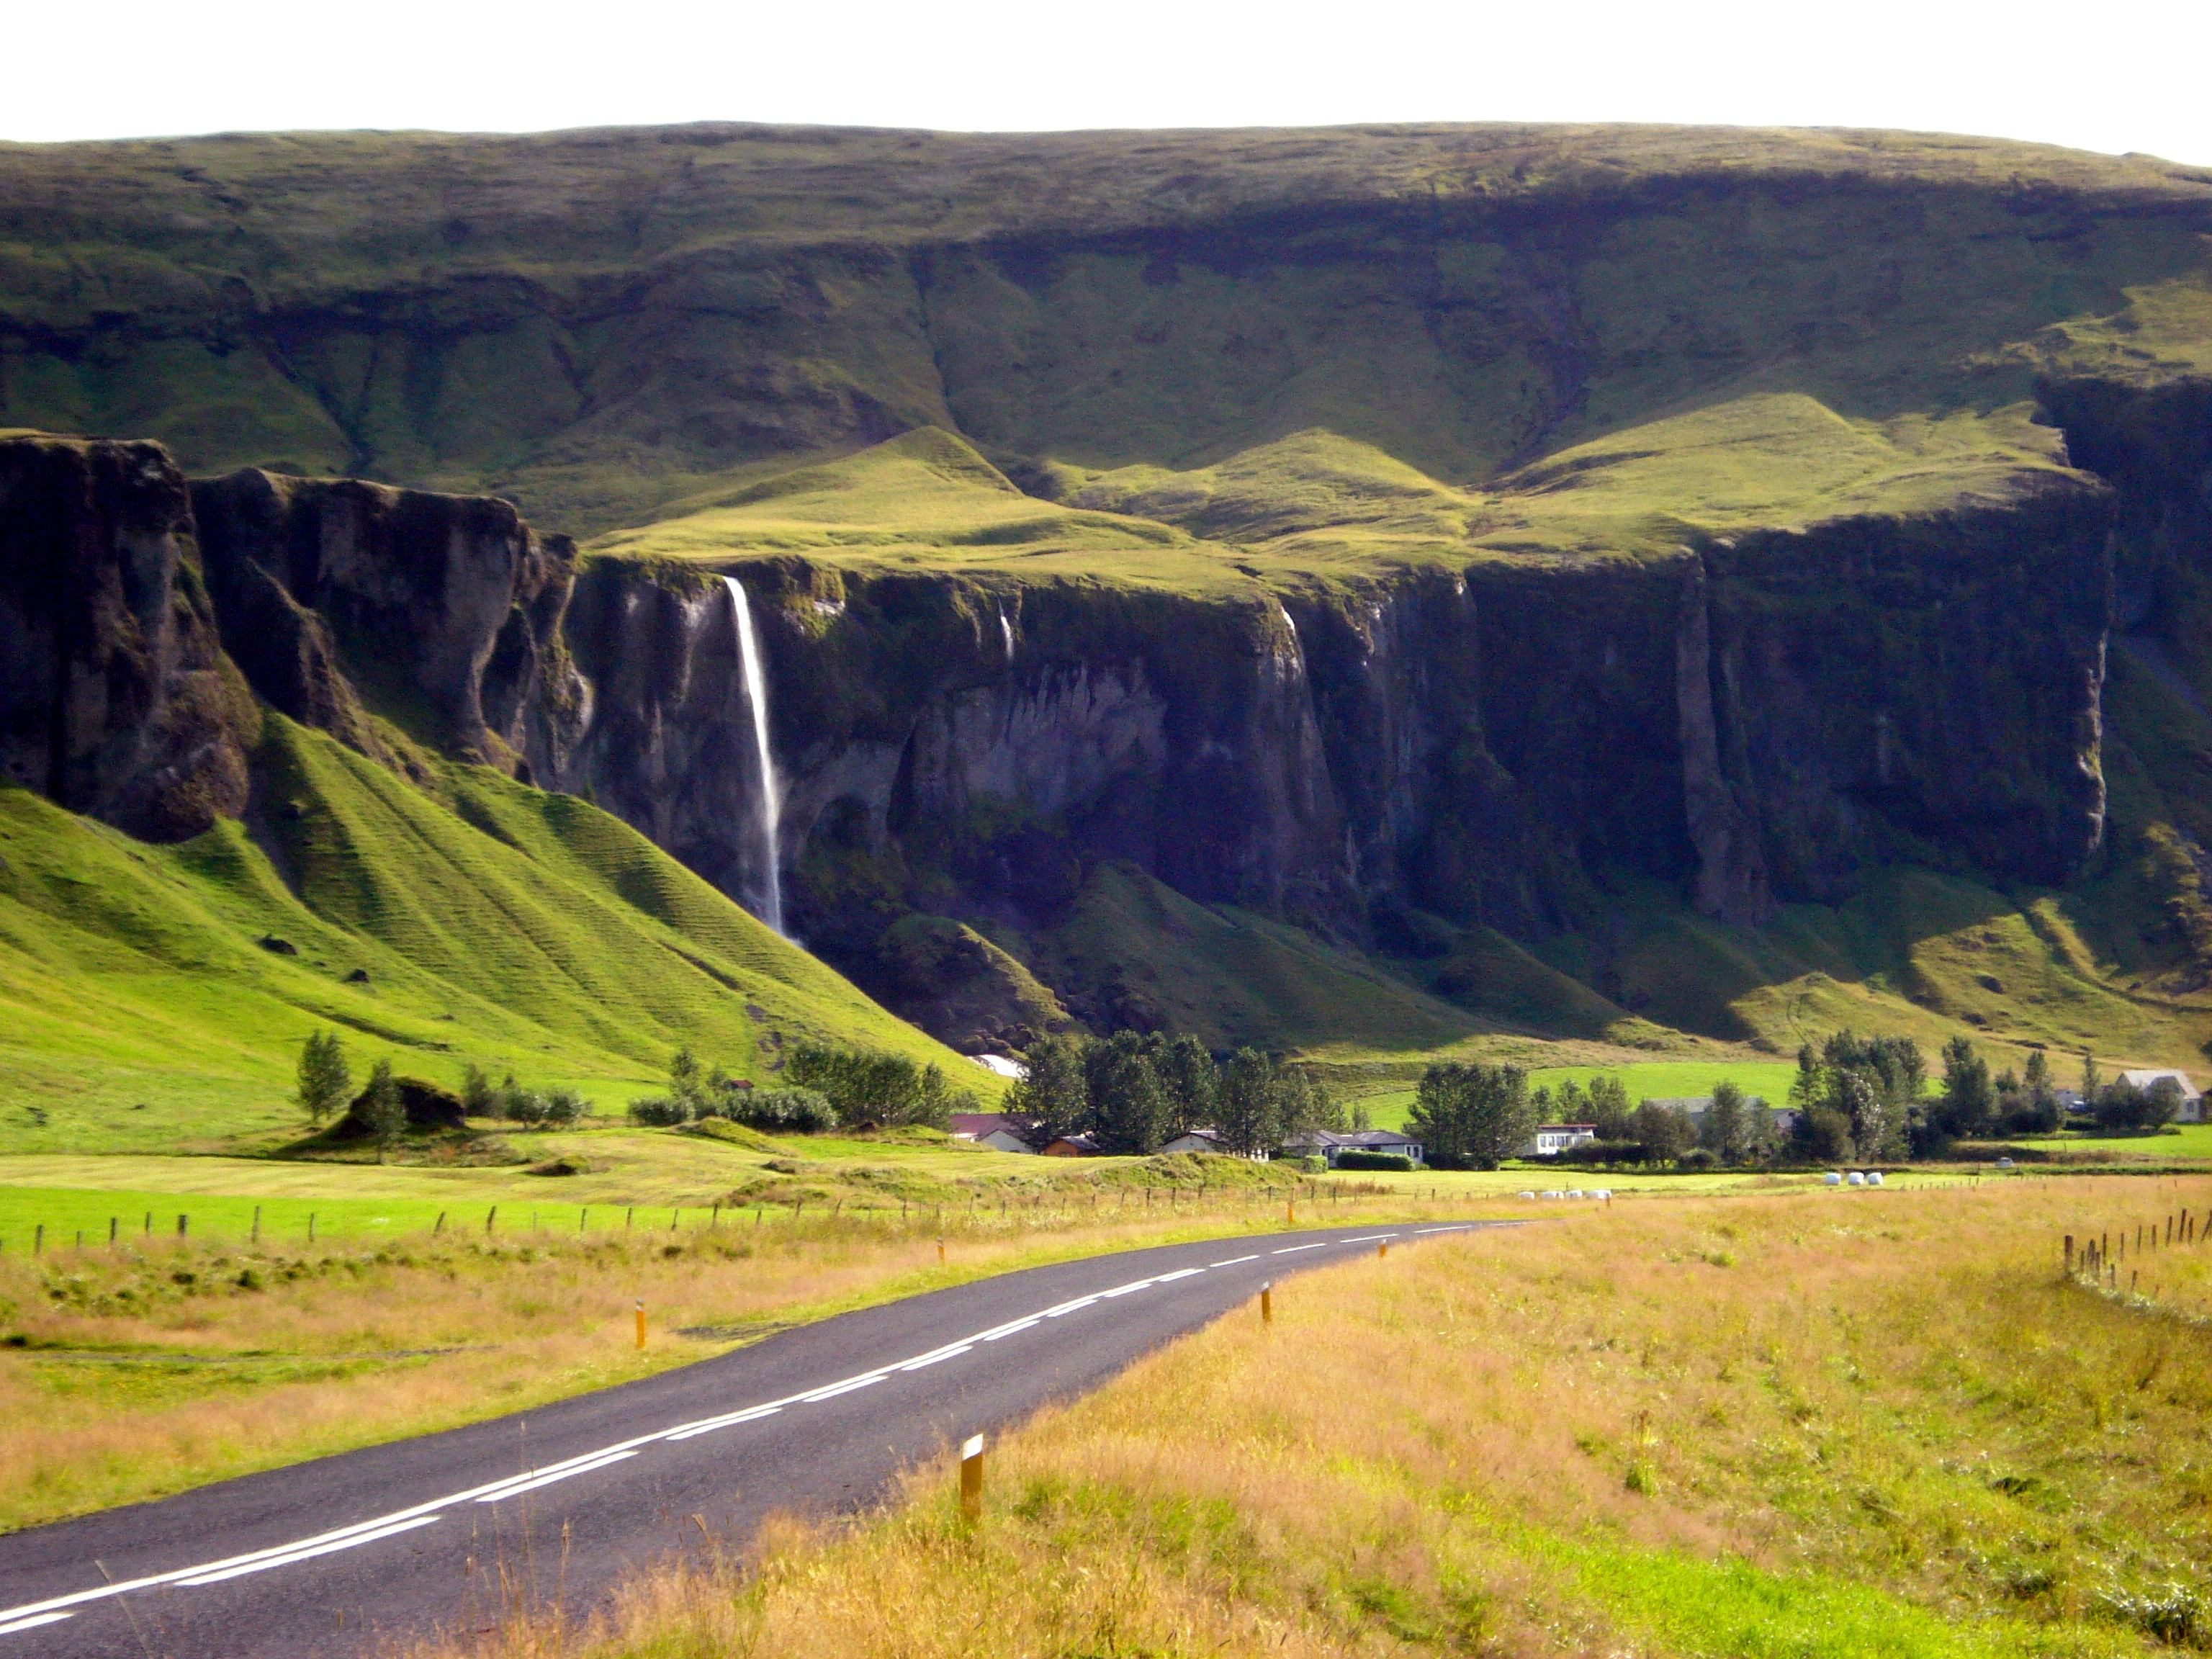 Iceland S Ring Road Wallpapers: Thermodynamics In The Land Of Fire And Ice